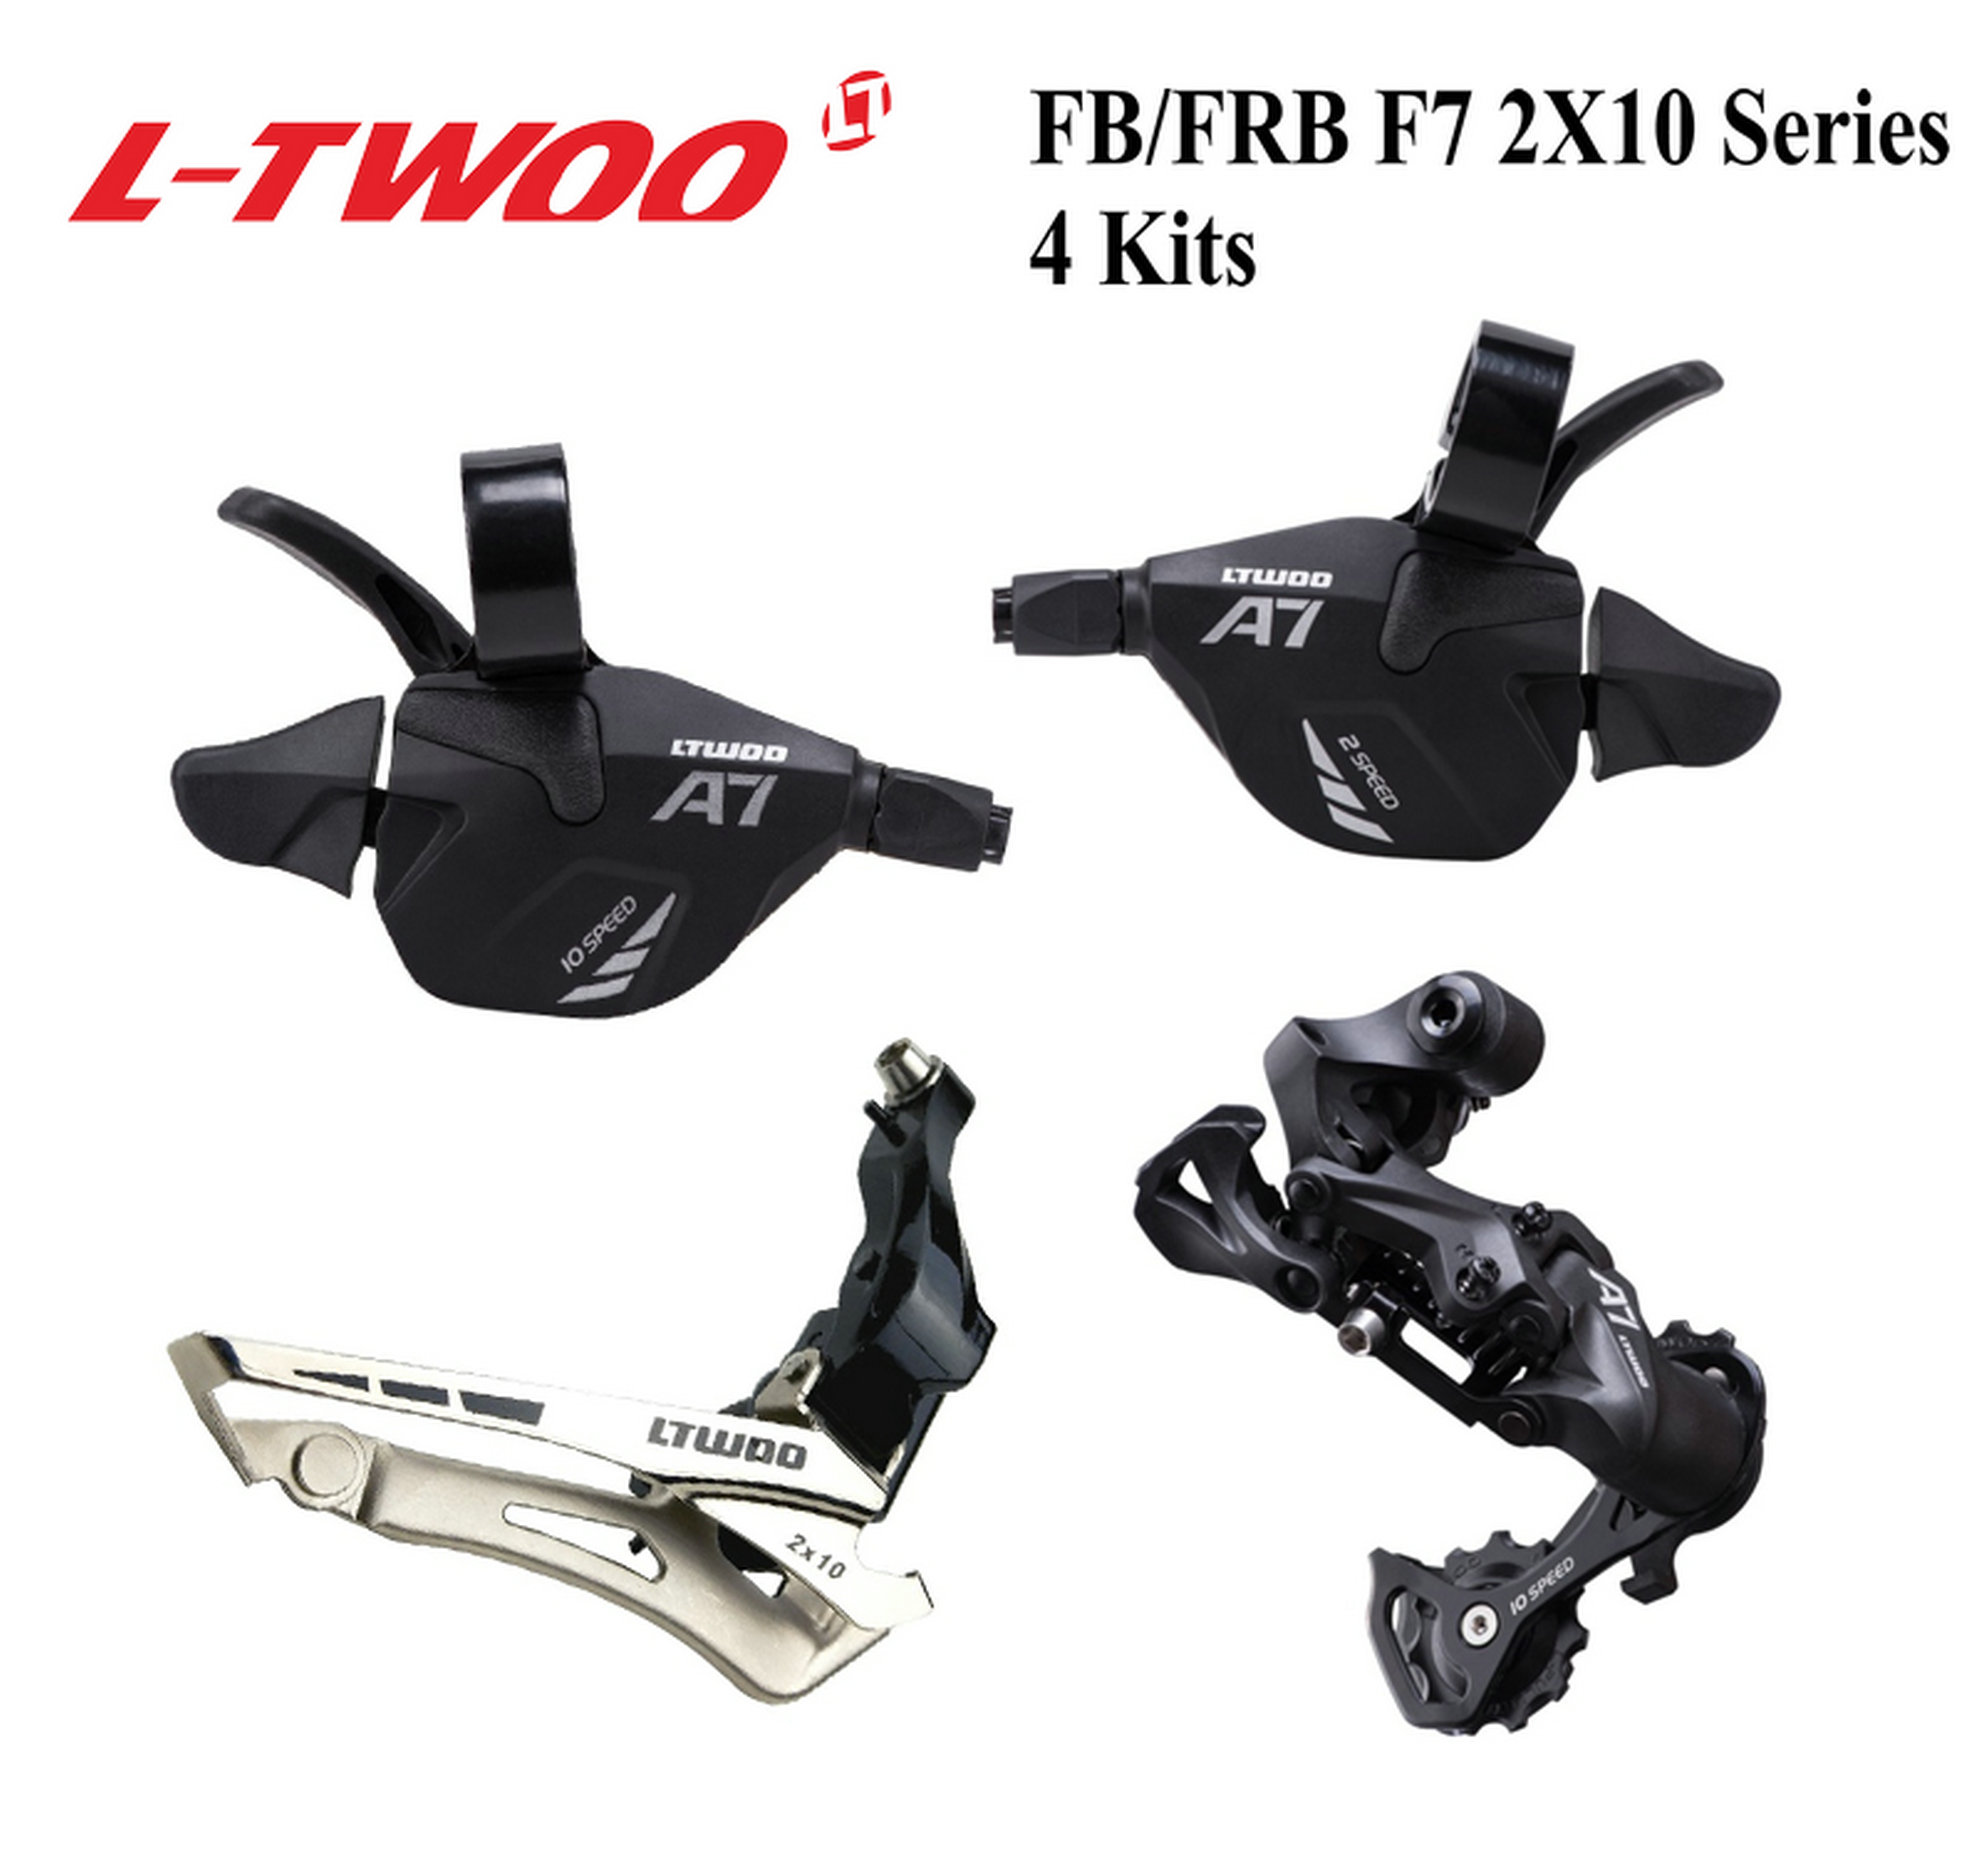 LTWOO Folding bike series F7 2x10 derailleur groupset shift lever left and right derailleur front and